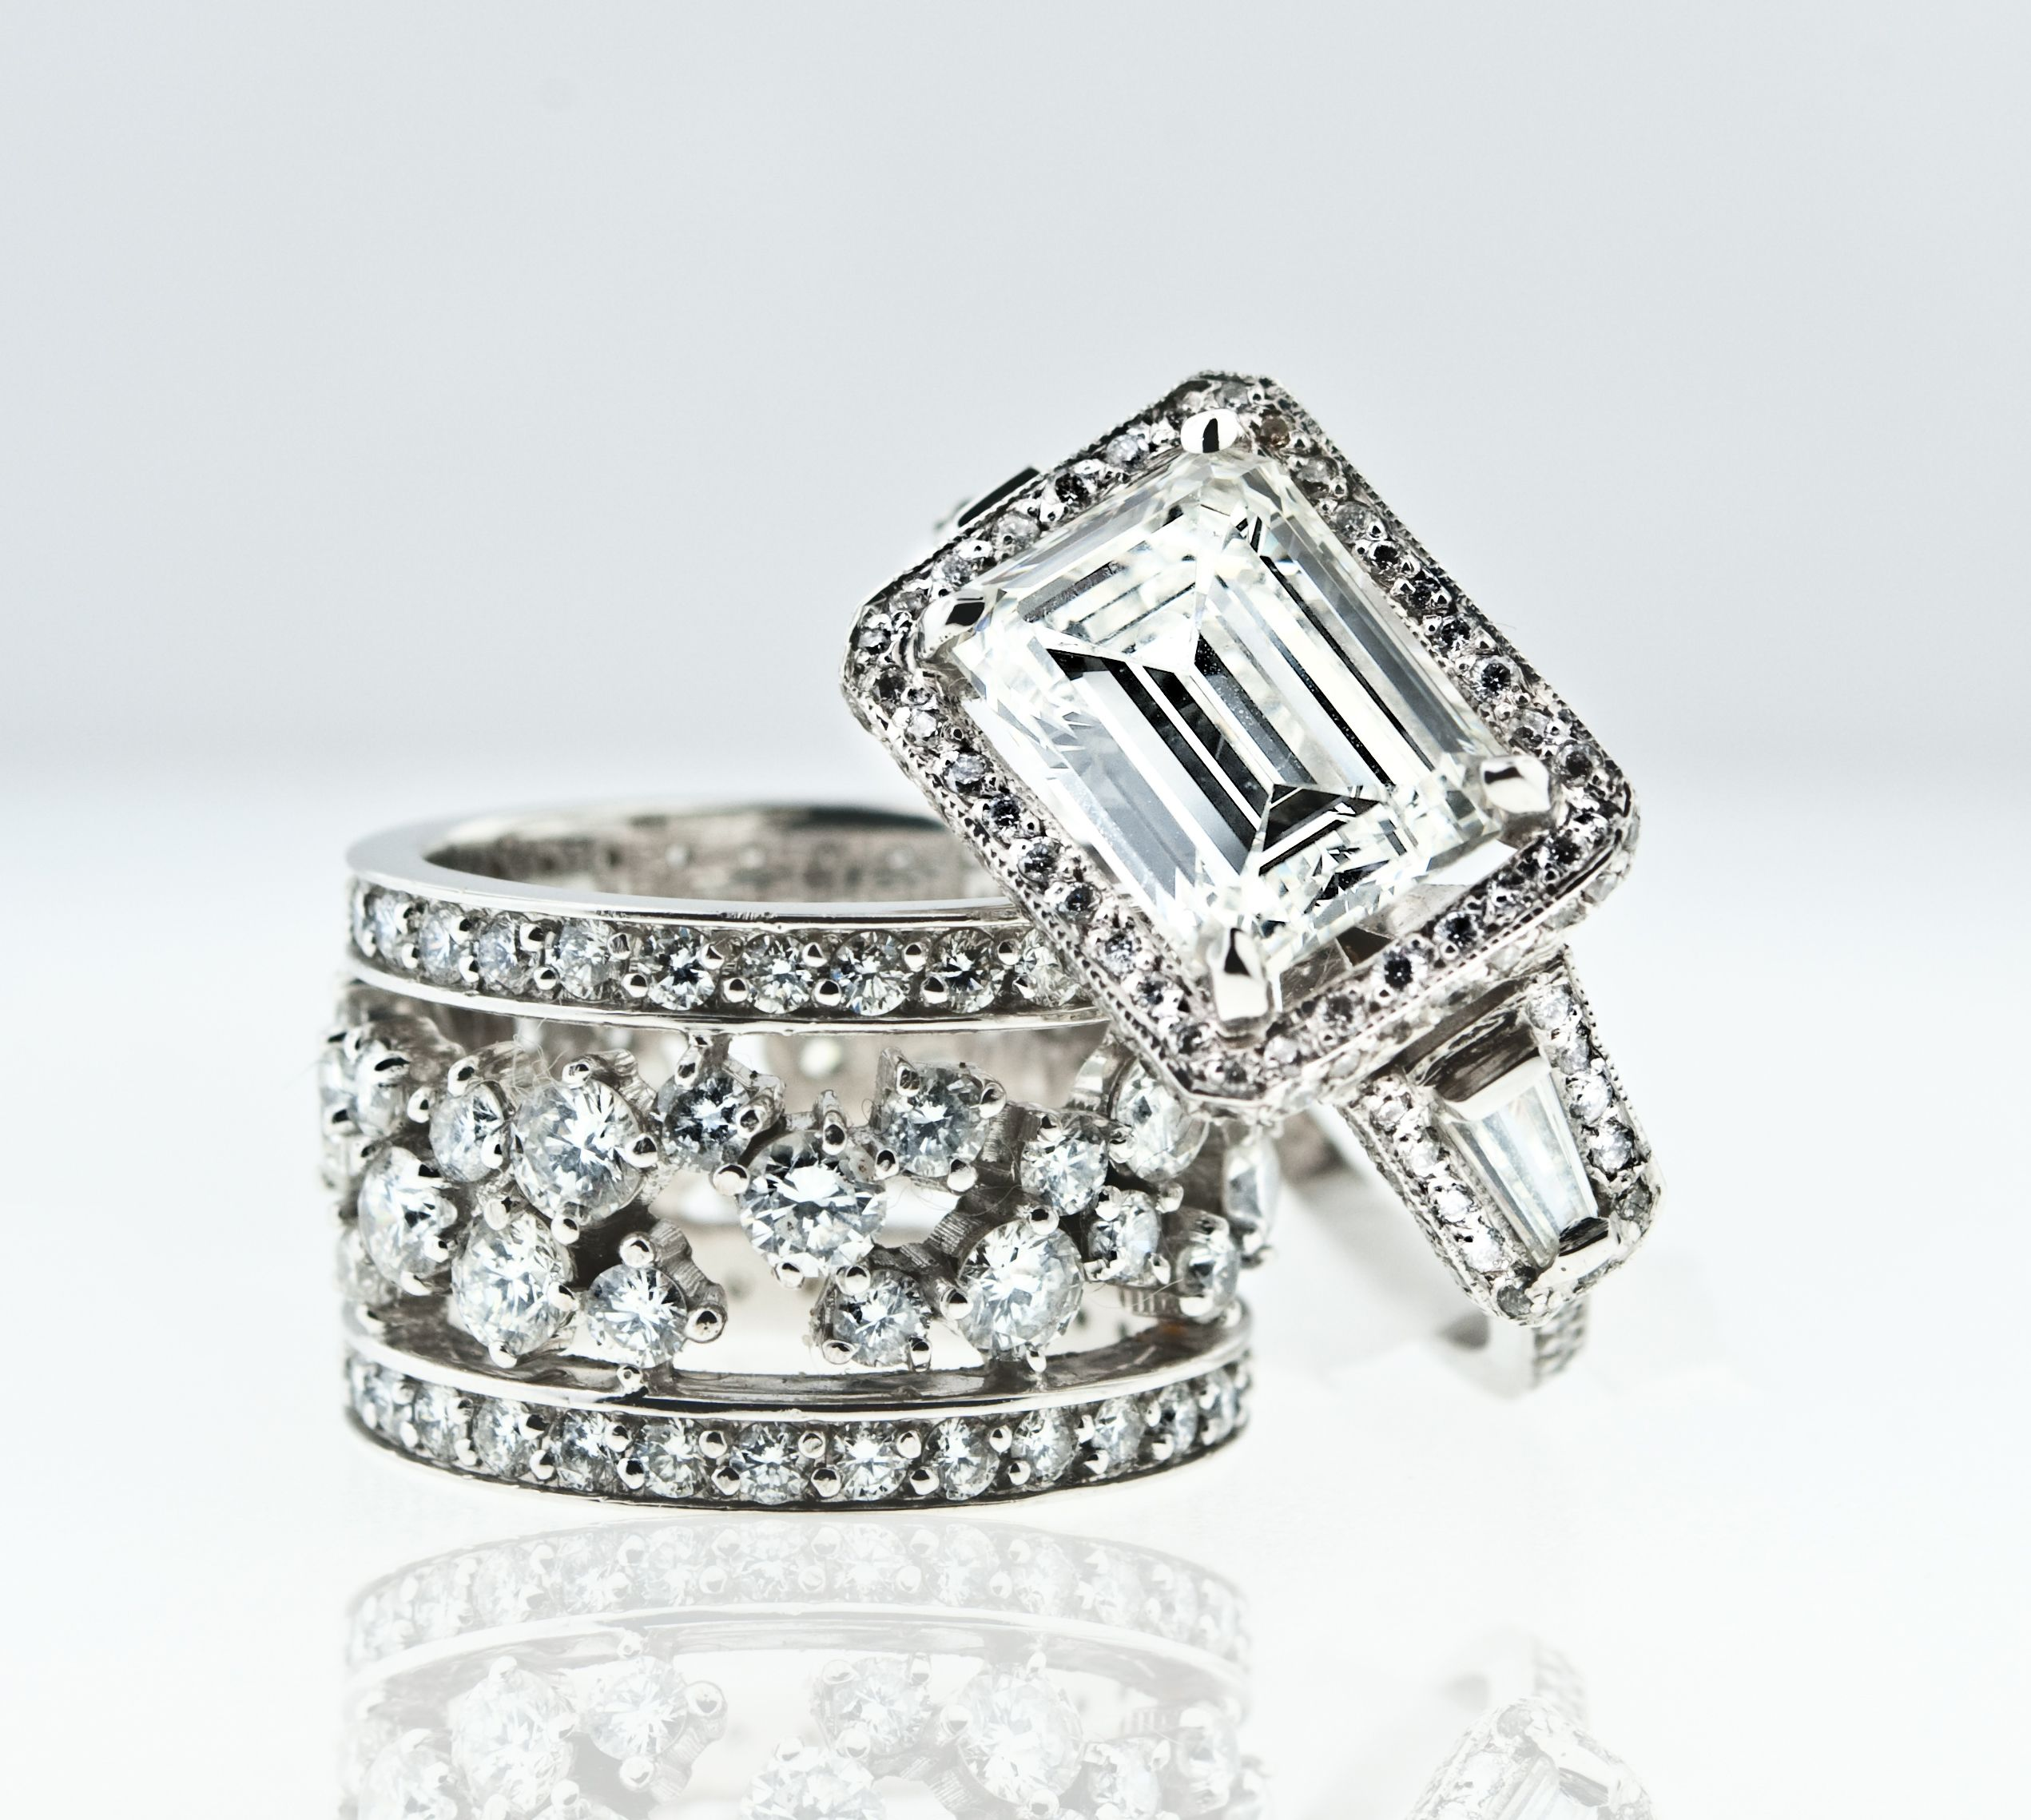 rings her repurposed redesigned original diamond h looking ring new weber r at engagement category jewelry with llc